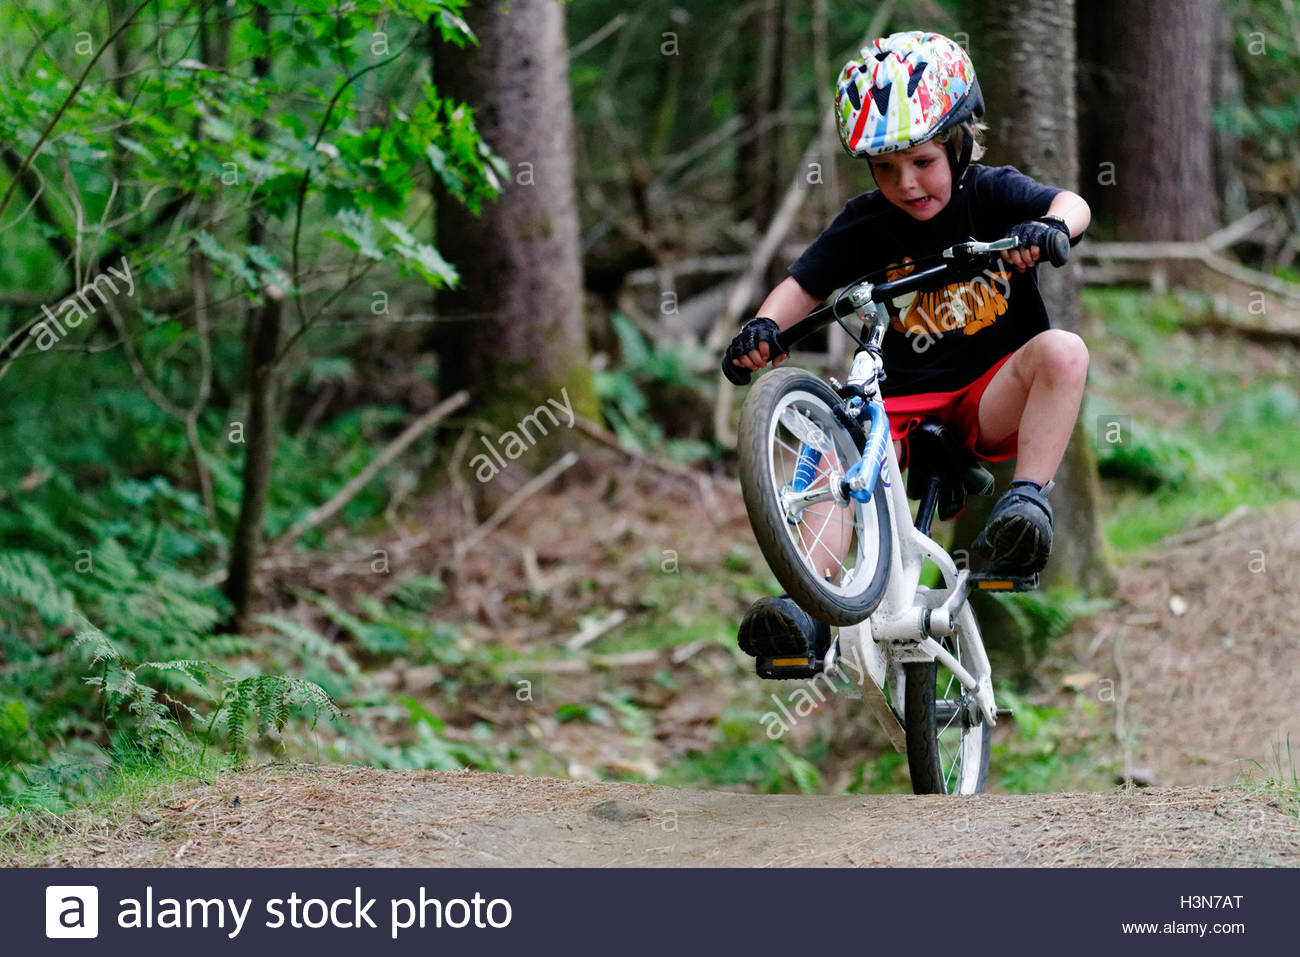 a-young-boy-4-yrs-old-popping-a-wheelie-on-a-pump-track-H3N7AT